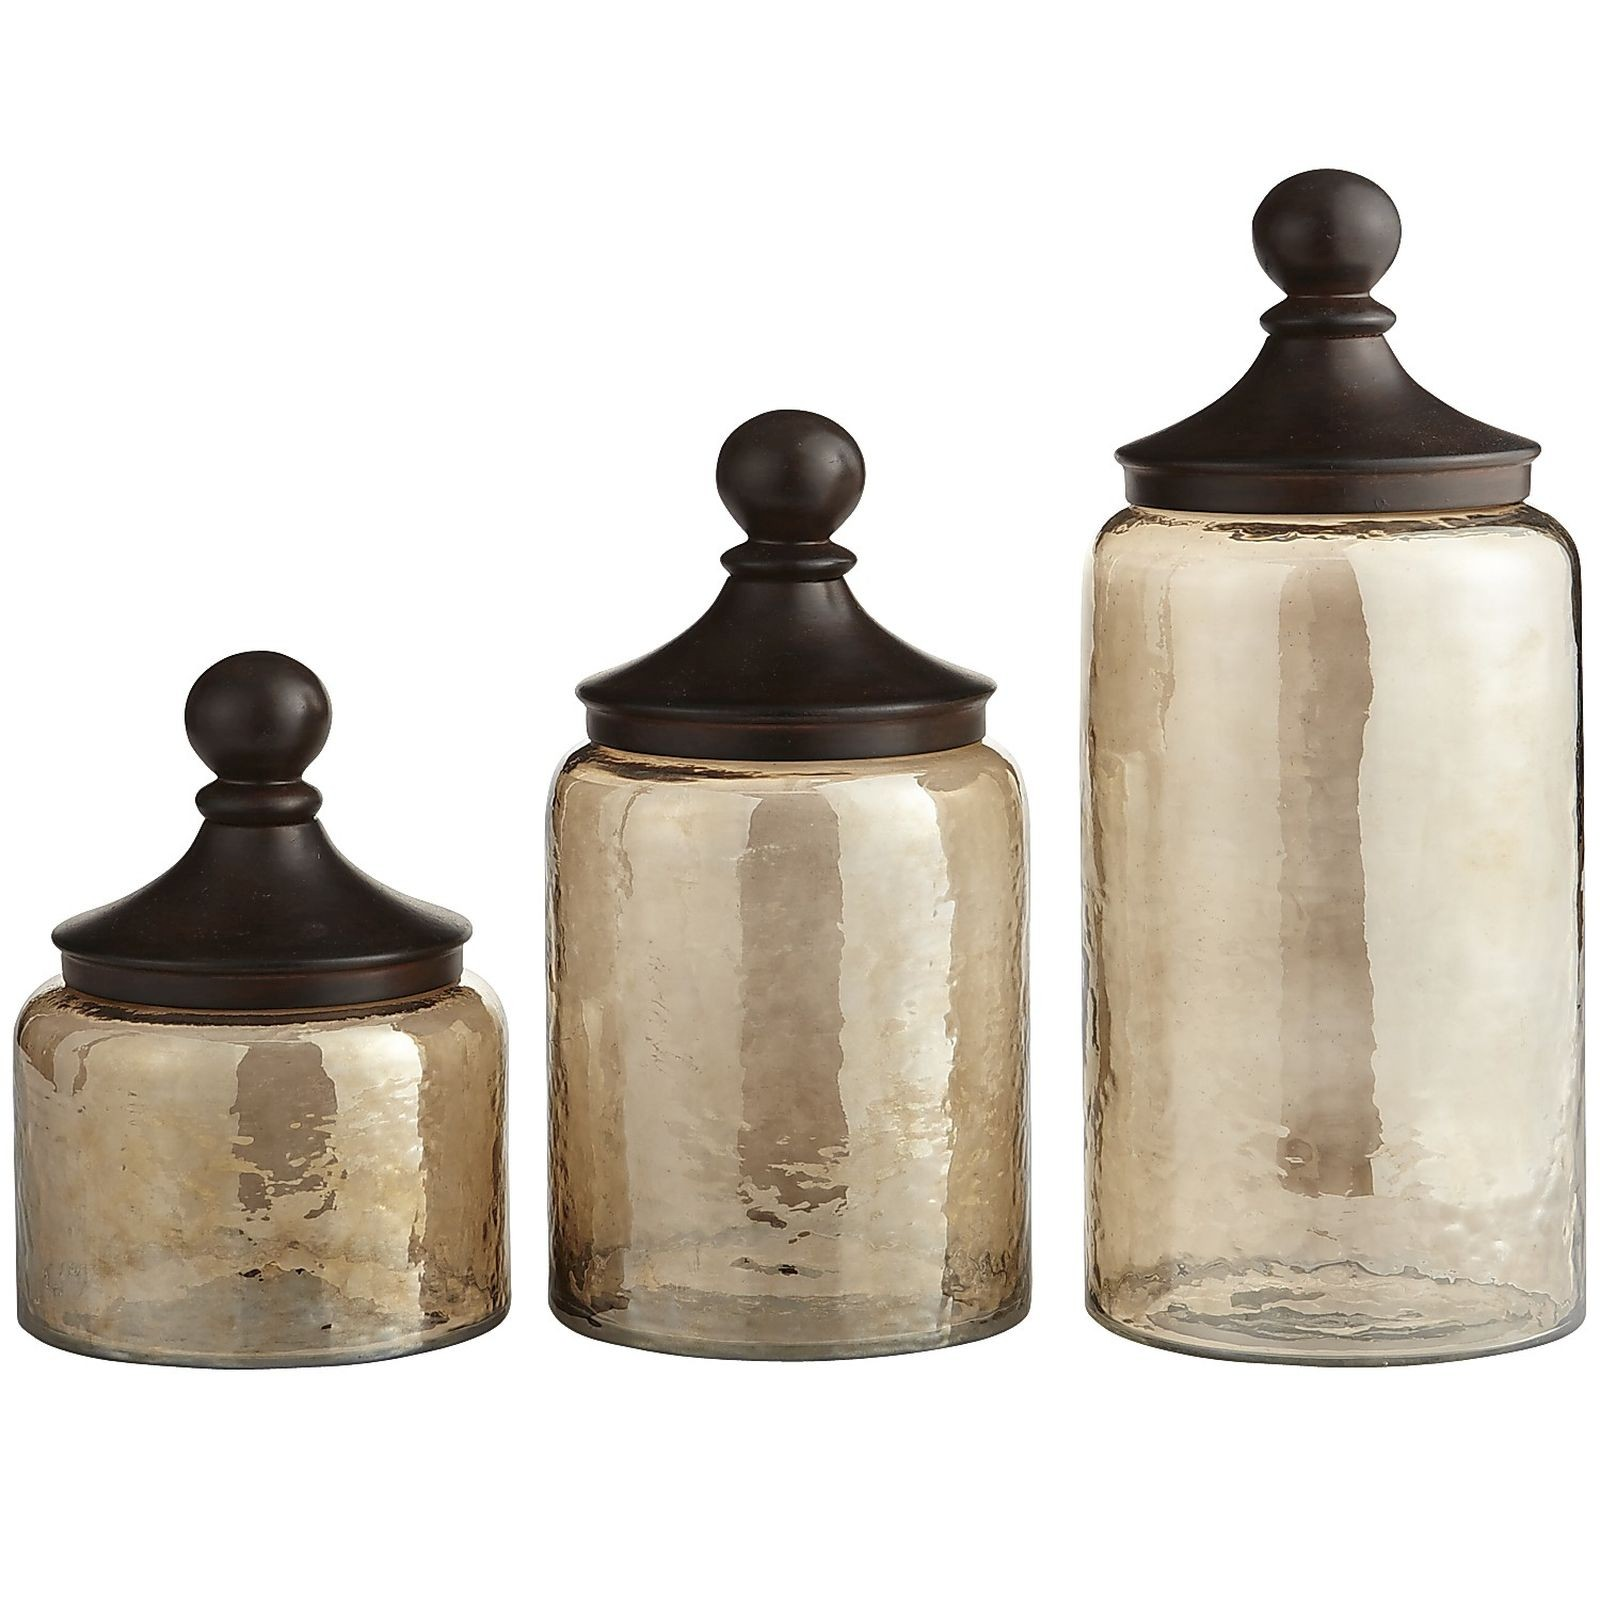 Bathroom Canisters Lovely Bathroom Canister Set Decoration Bathroom Design Ideas